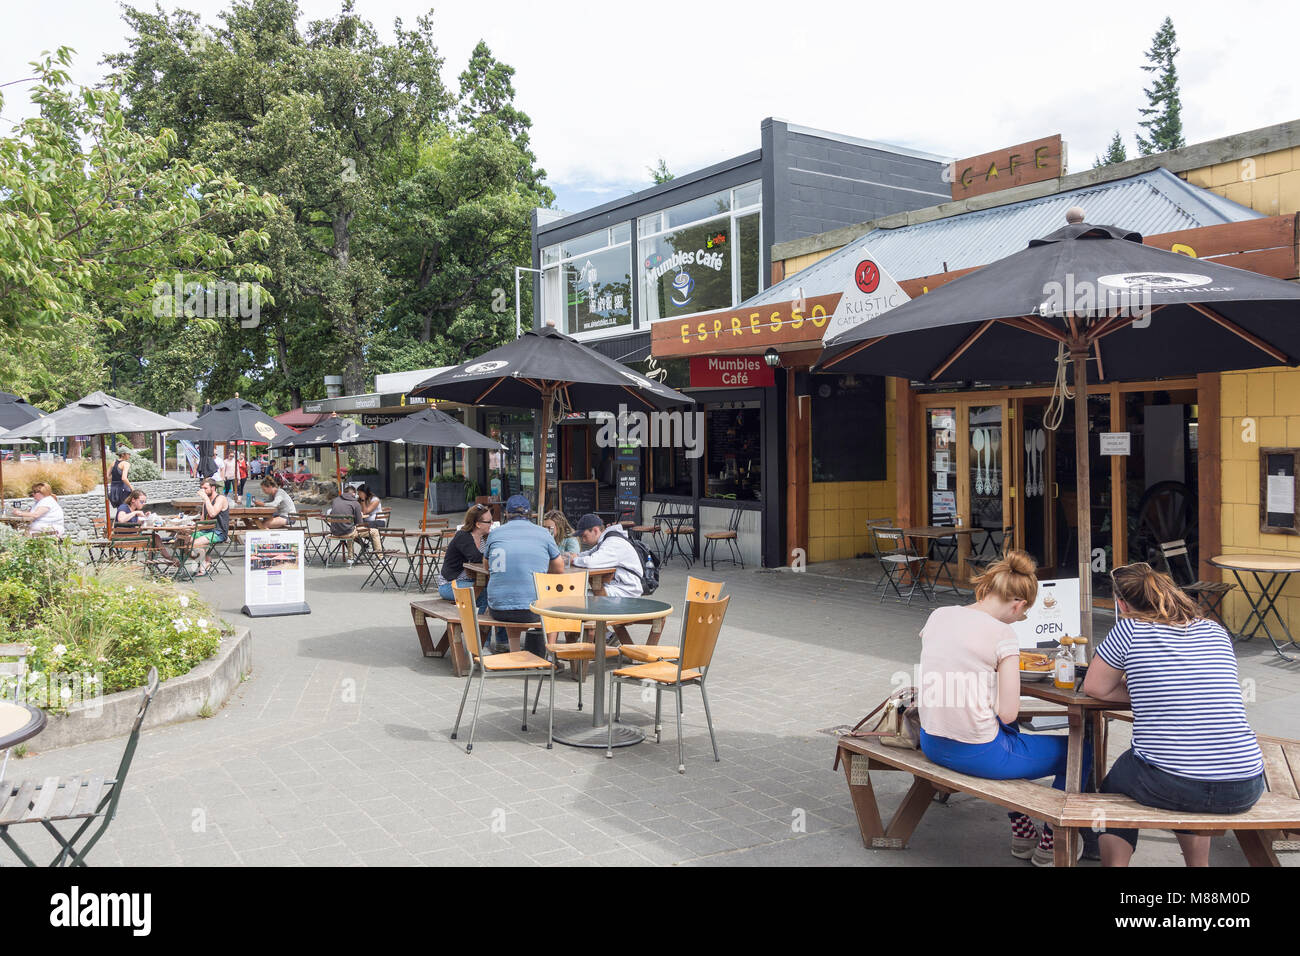 Mumbles and Rustic pavement cafes, Conical Hill Road, Hanmer Springs, North Canterbury, Canterbury Region, New Zealand - Stock Image